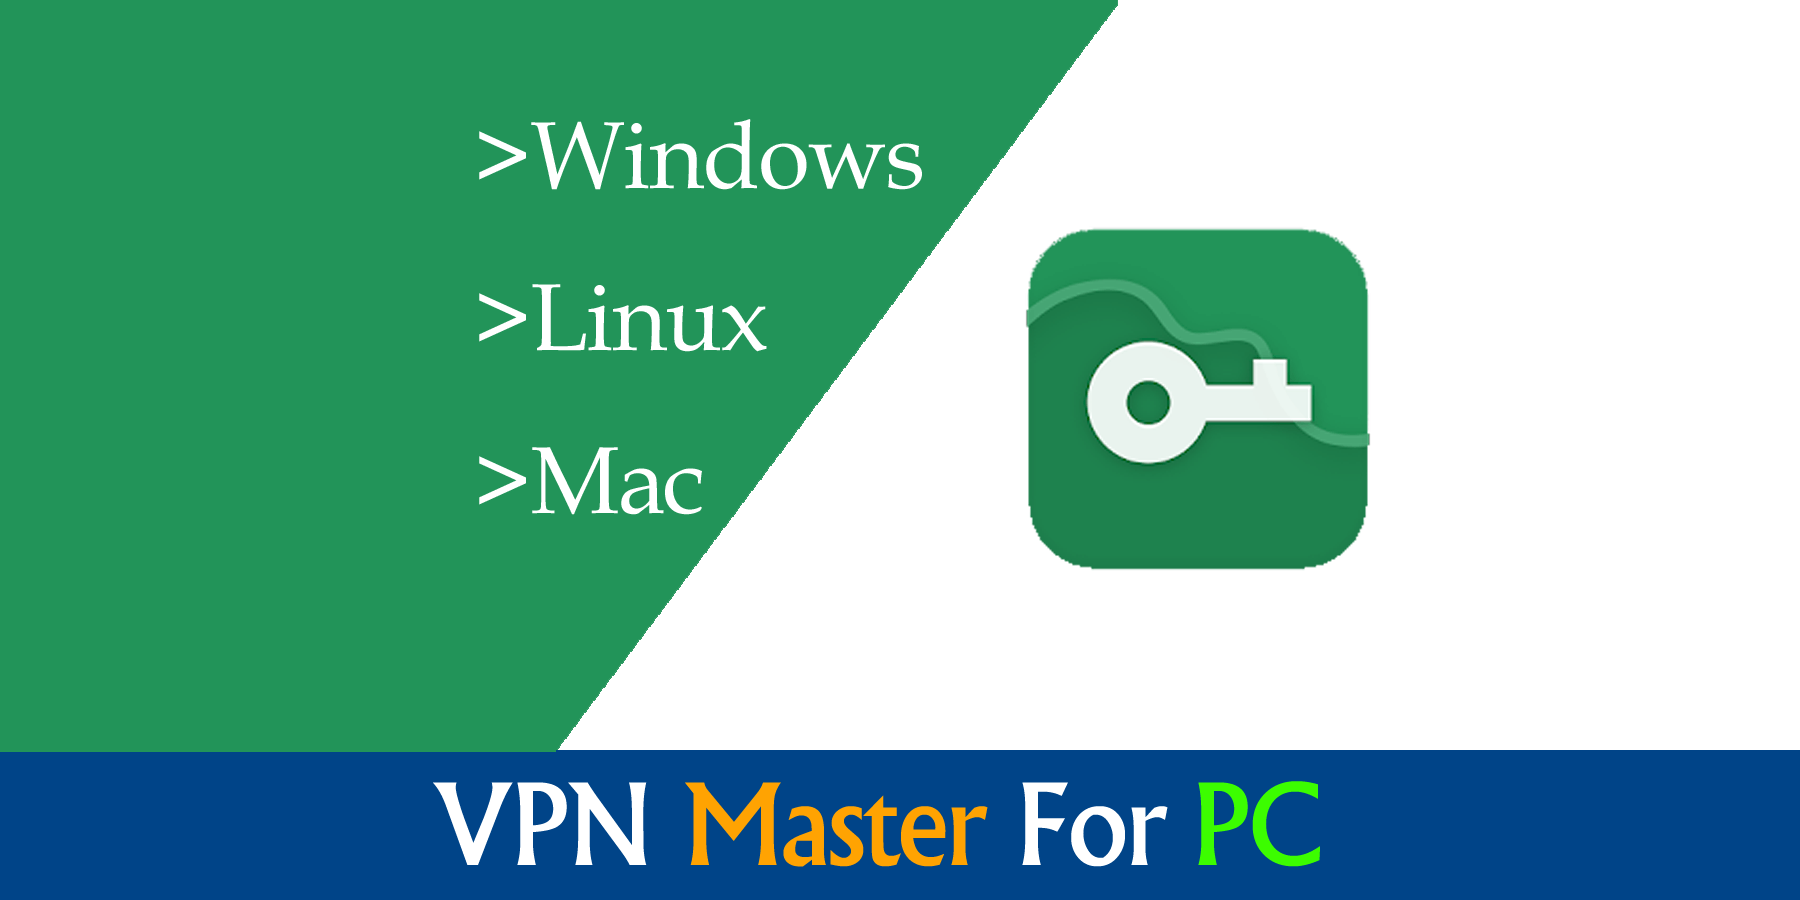 VPN Master For PC Windows Mac Free Download Newest Version